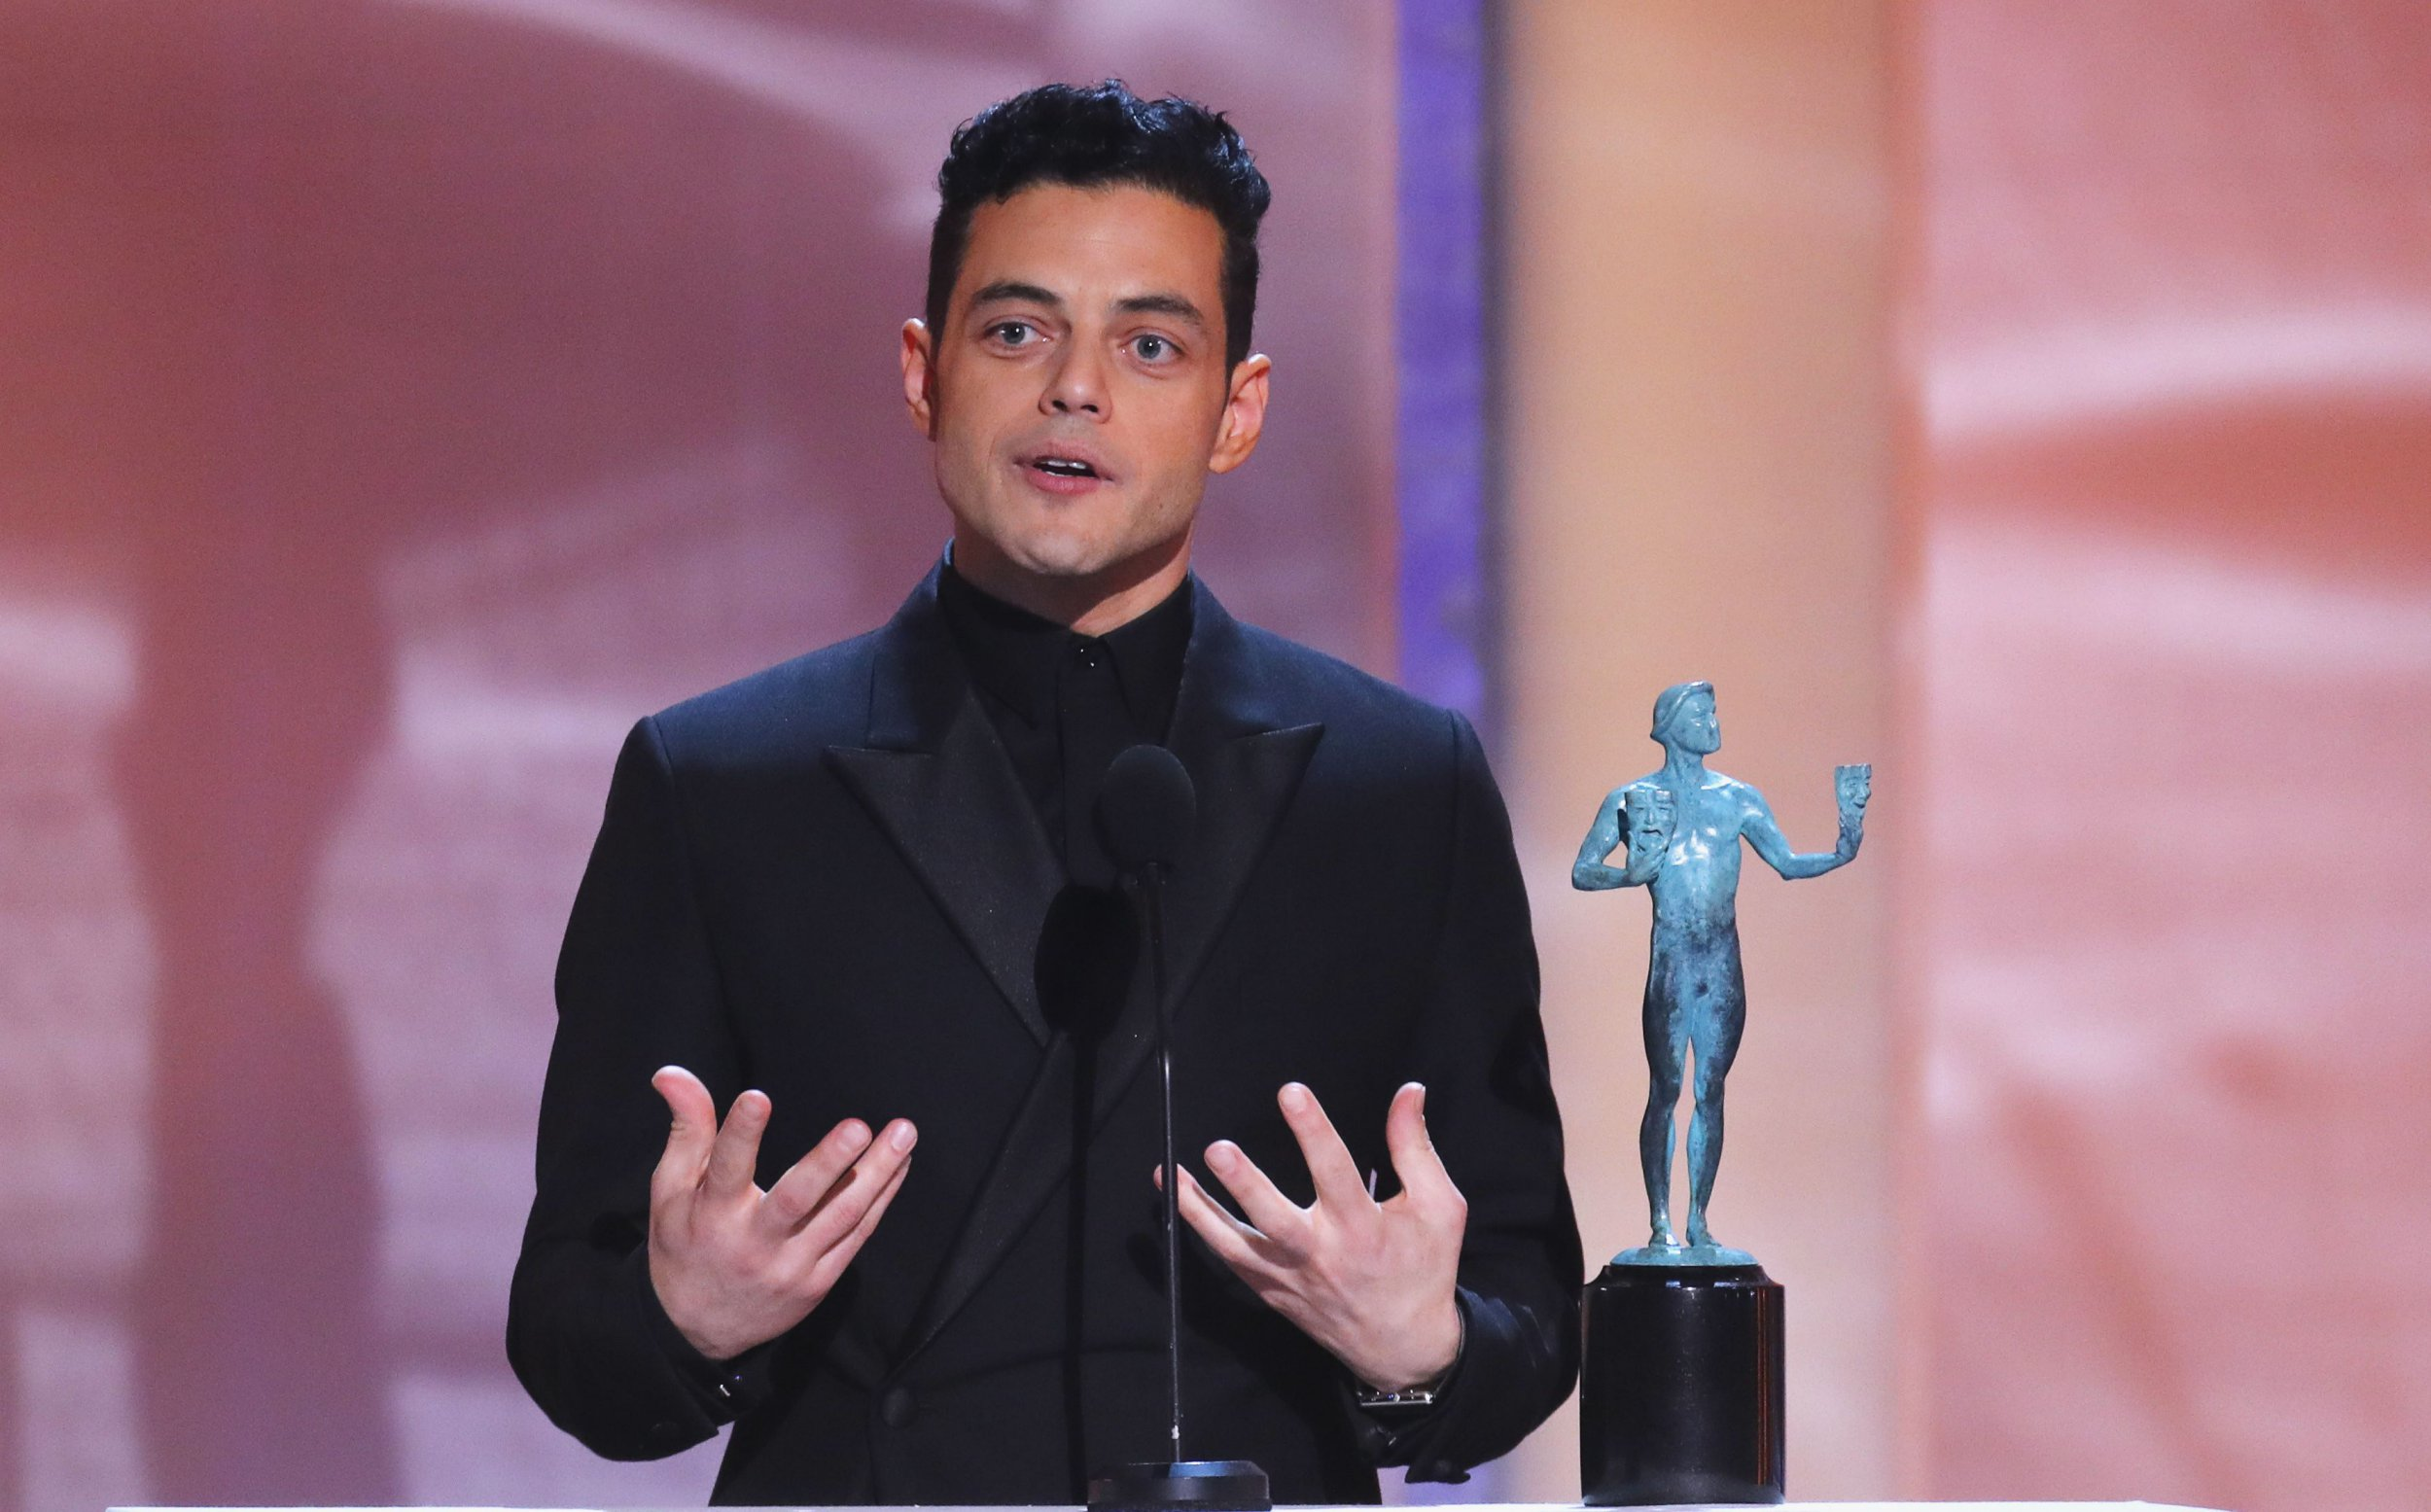 Bohemian Rhapsody's Rami Malek can't believe he beat fellow nominees including Bradley Cooper and Christian Bale at SAG Awards